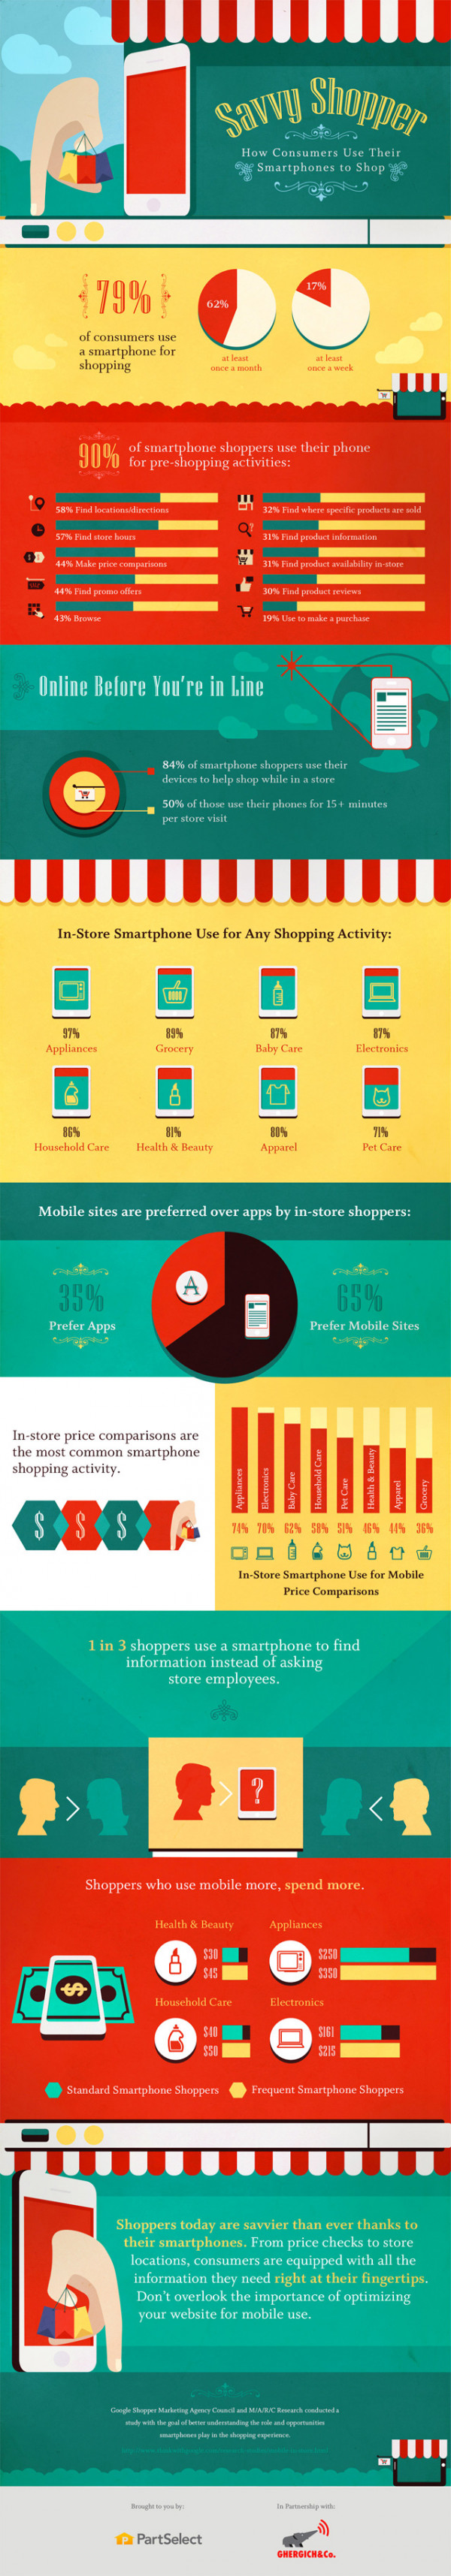 Savvy Shopper: How Consumers Use Their Smartphones to Shop